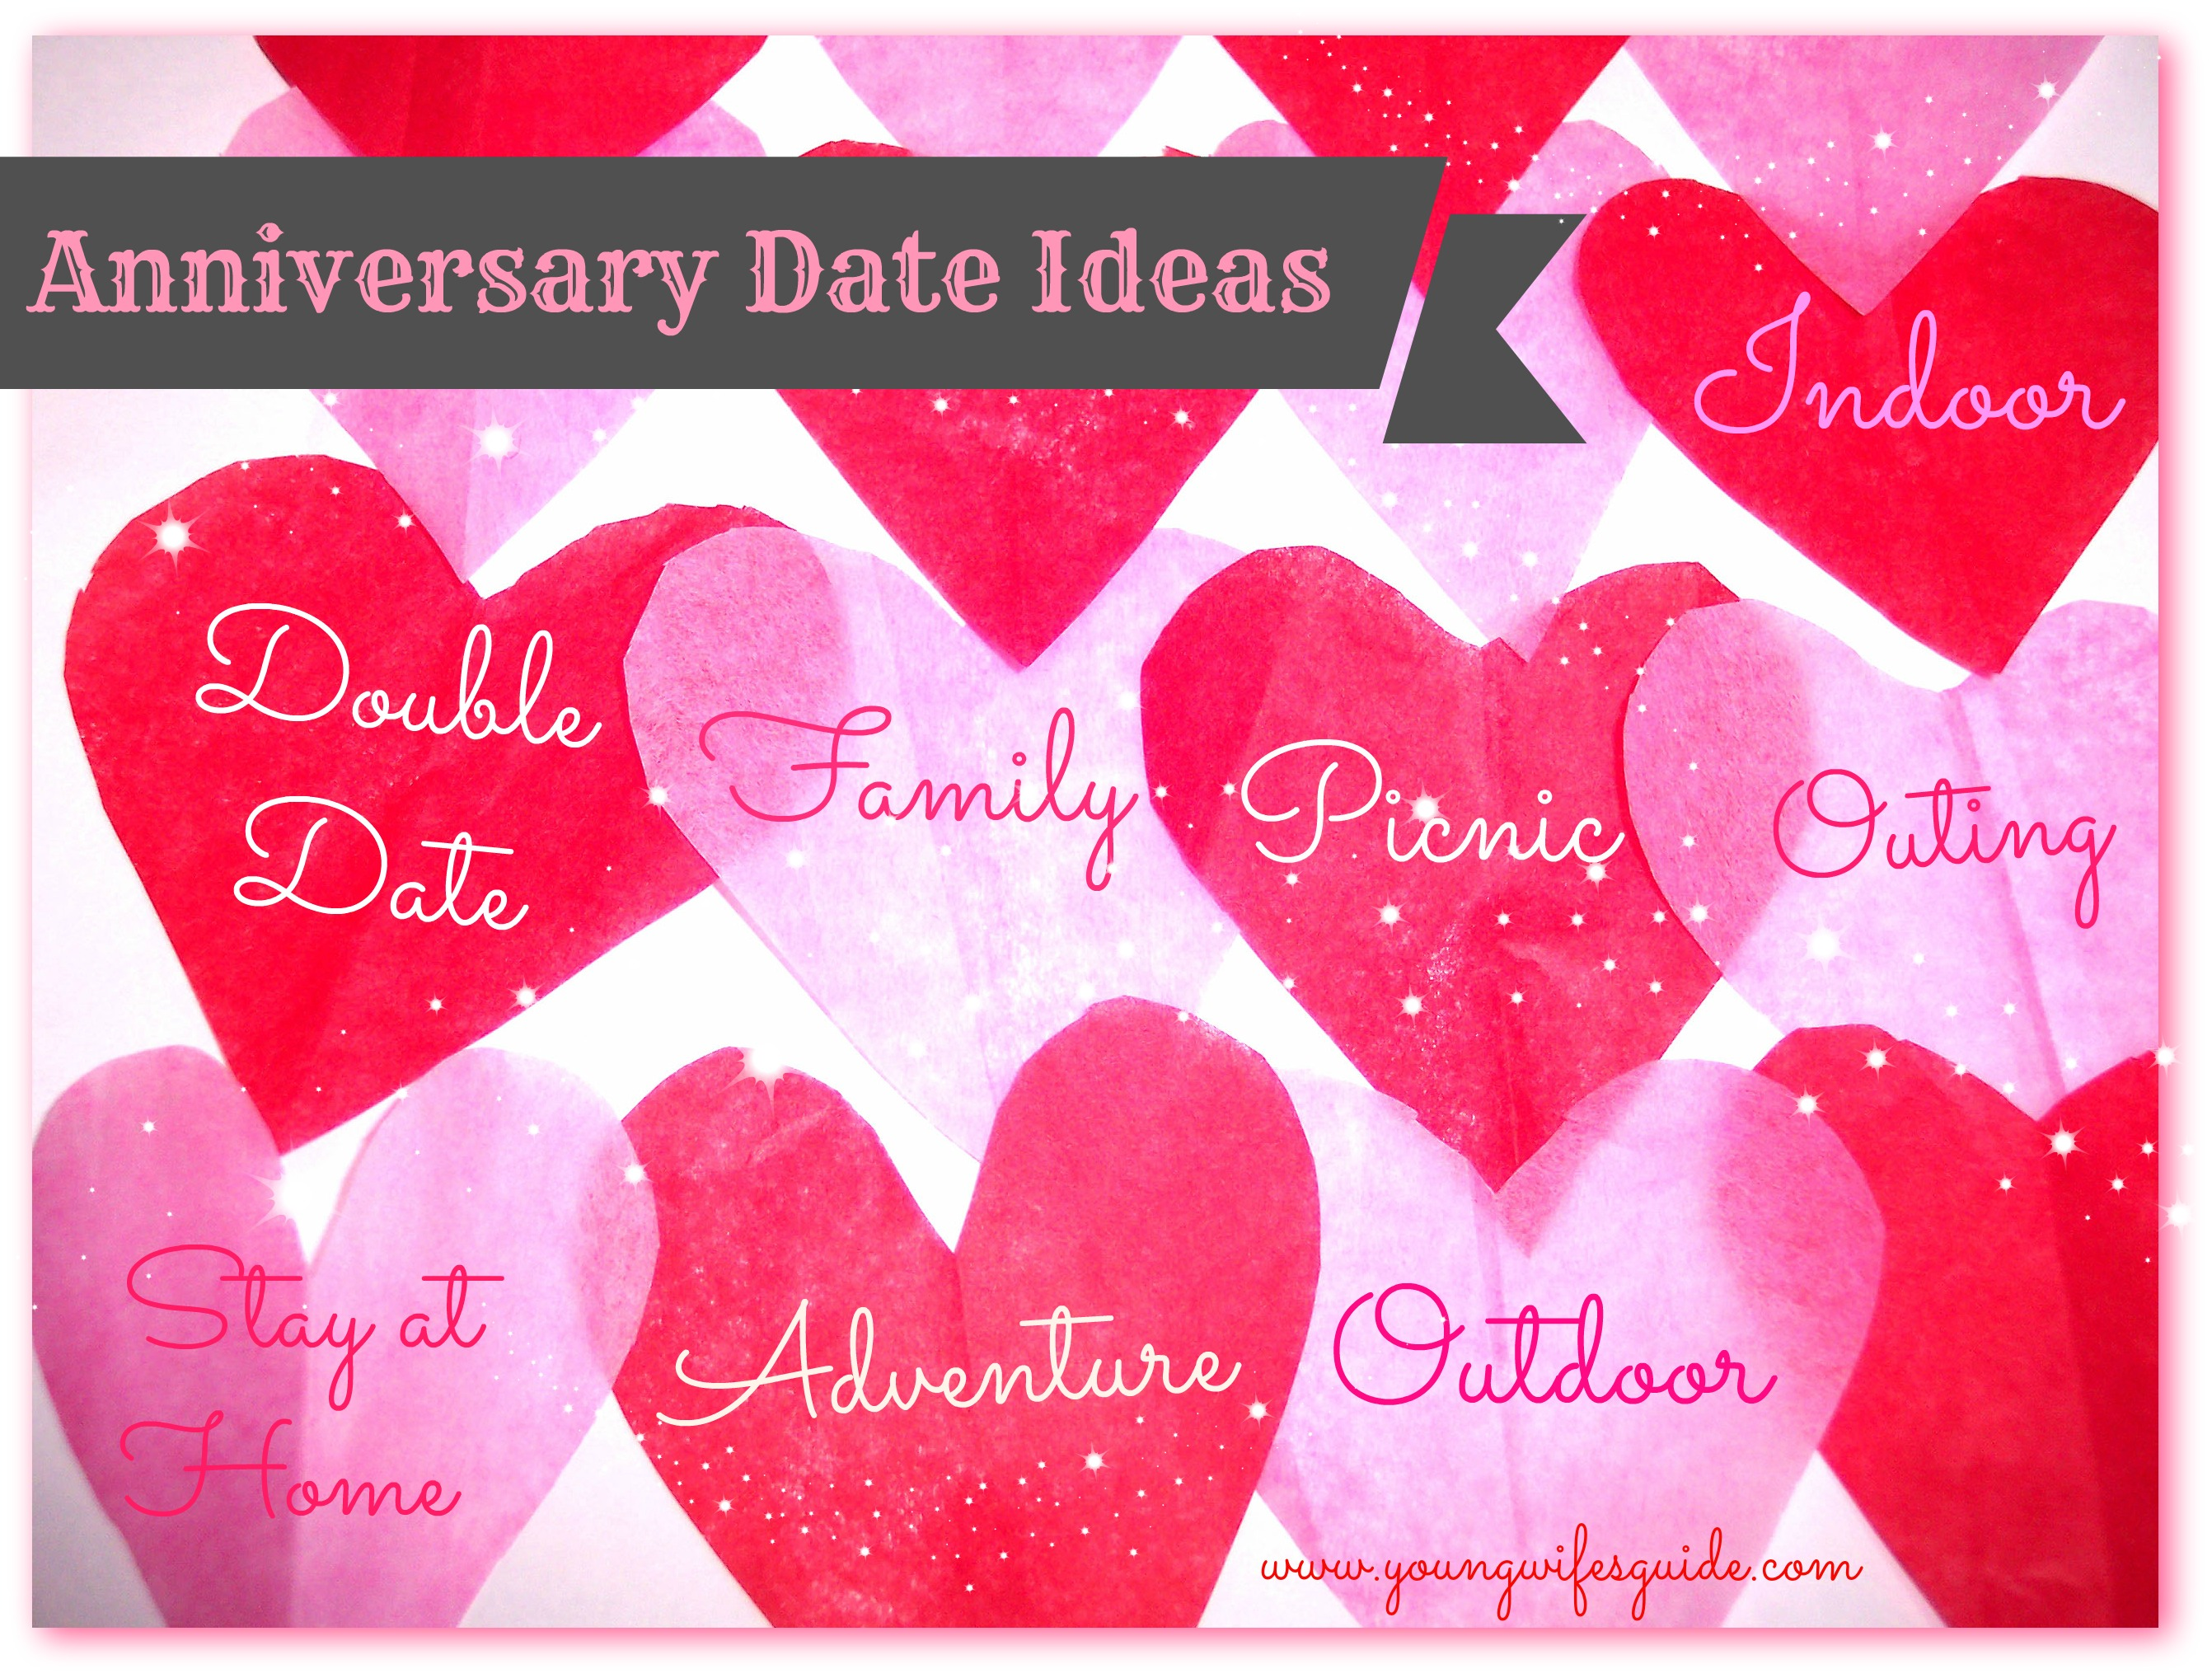 Pottery Date Ideas Anniversary Tries